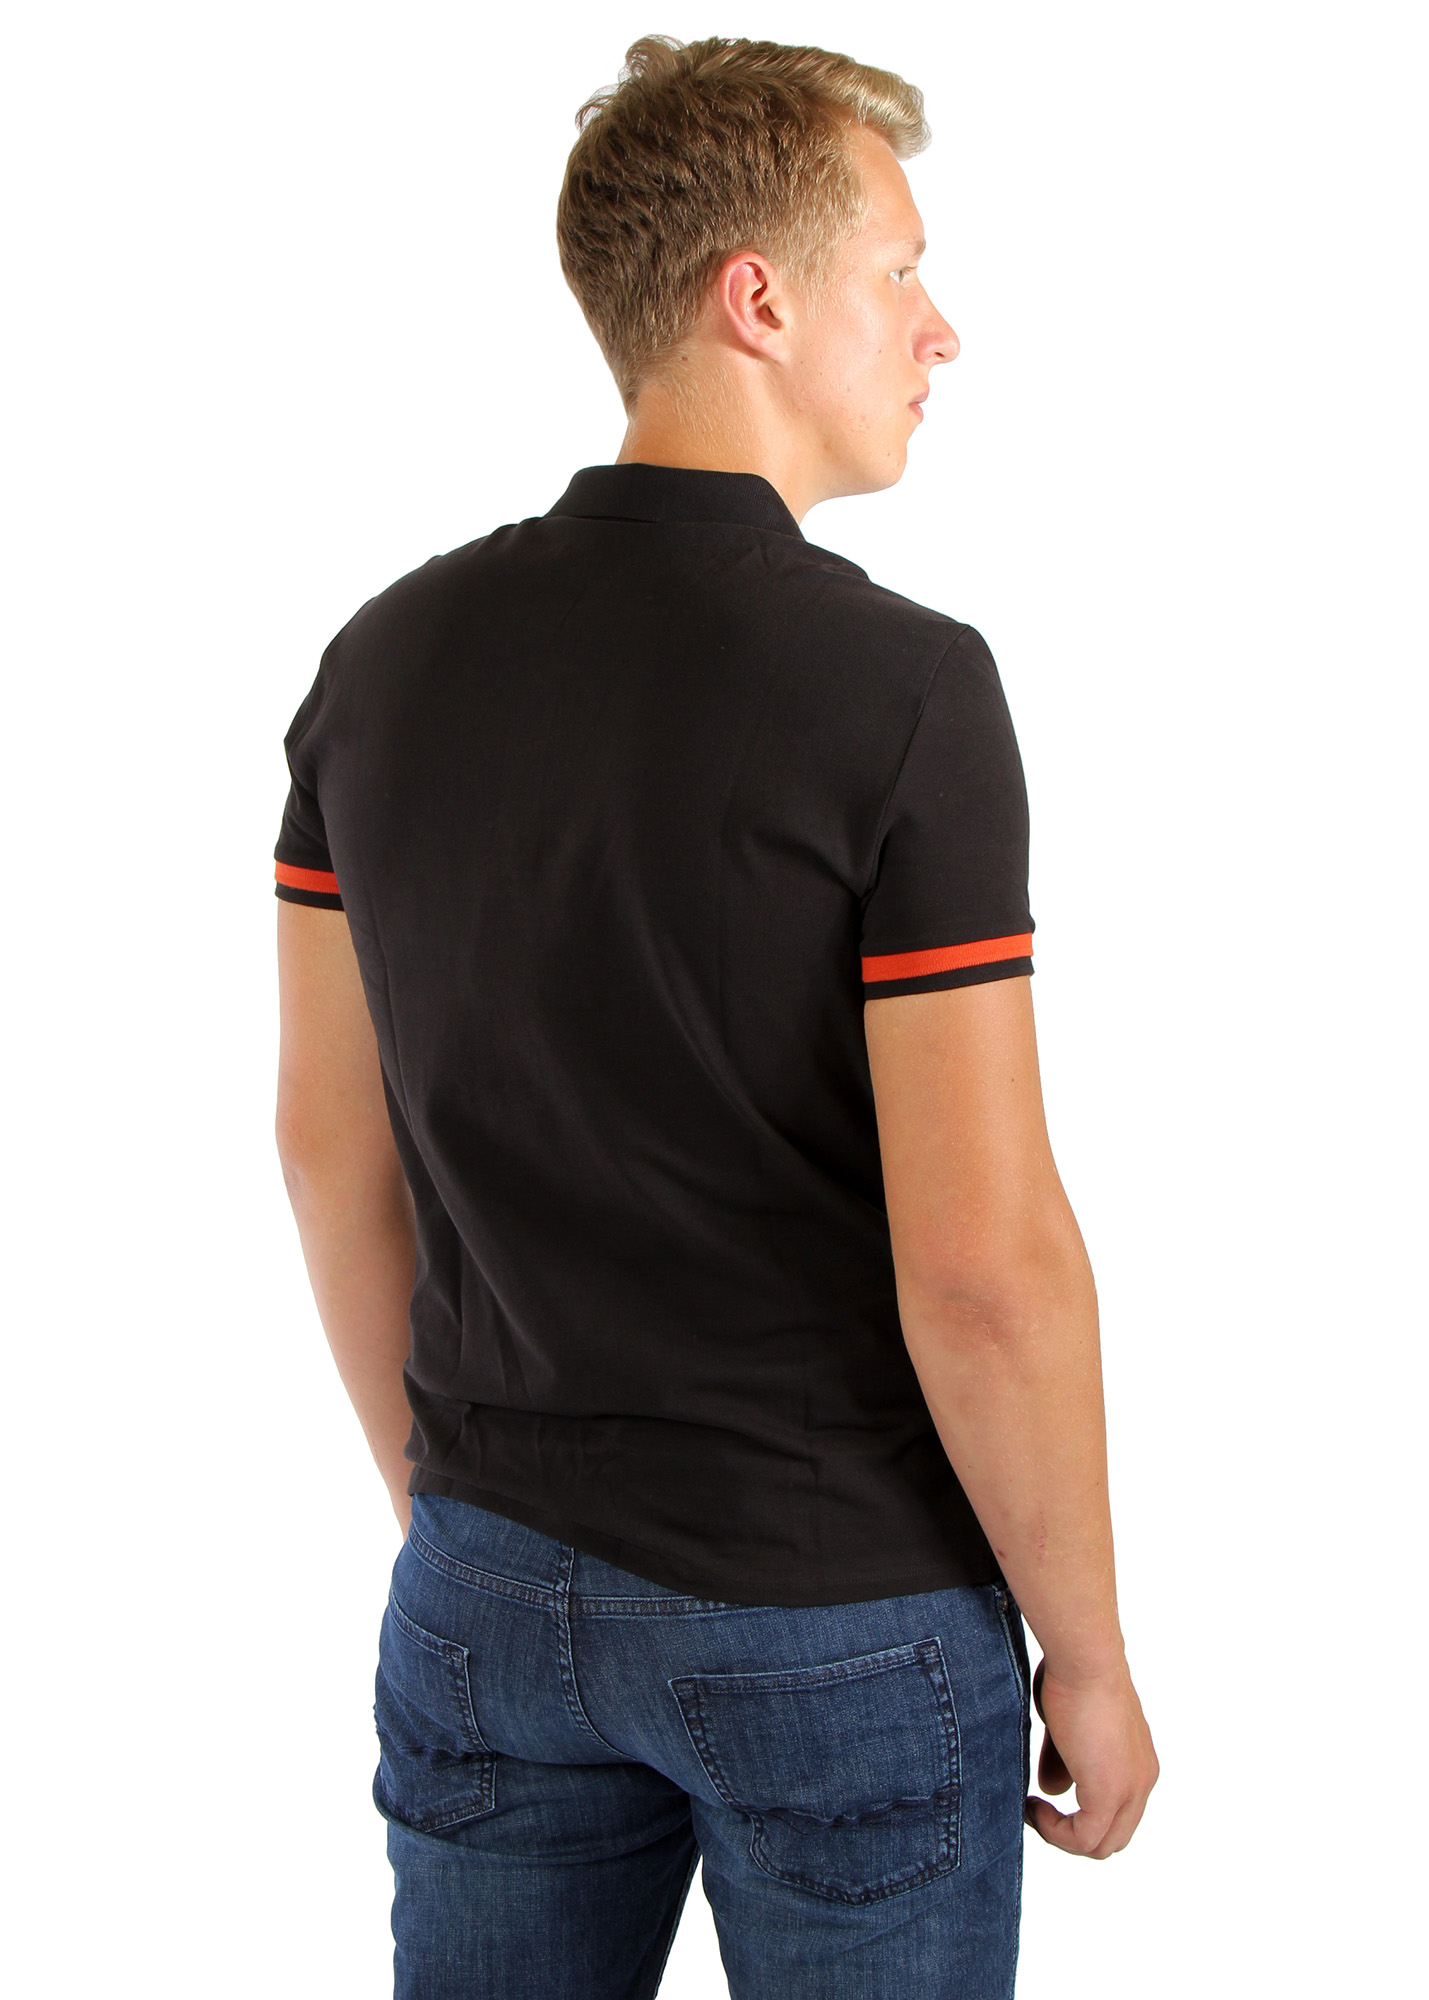 Polo t shirt clothing store kokos for Polo shirt and jeans